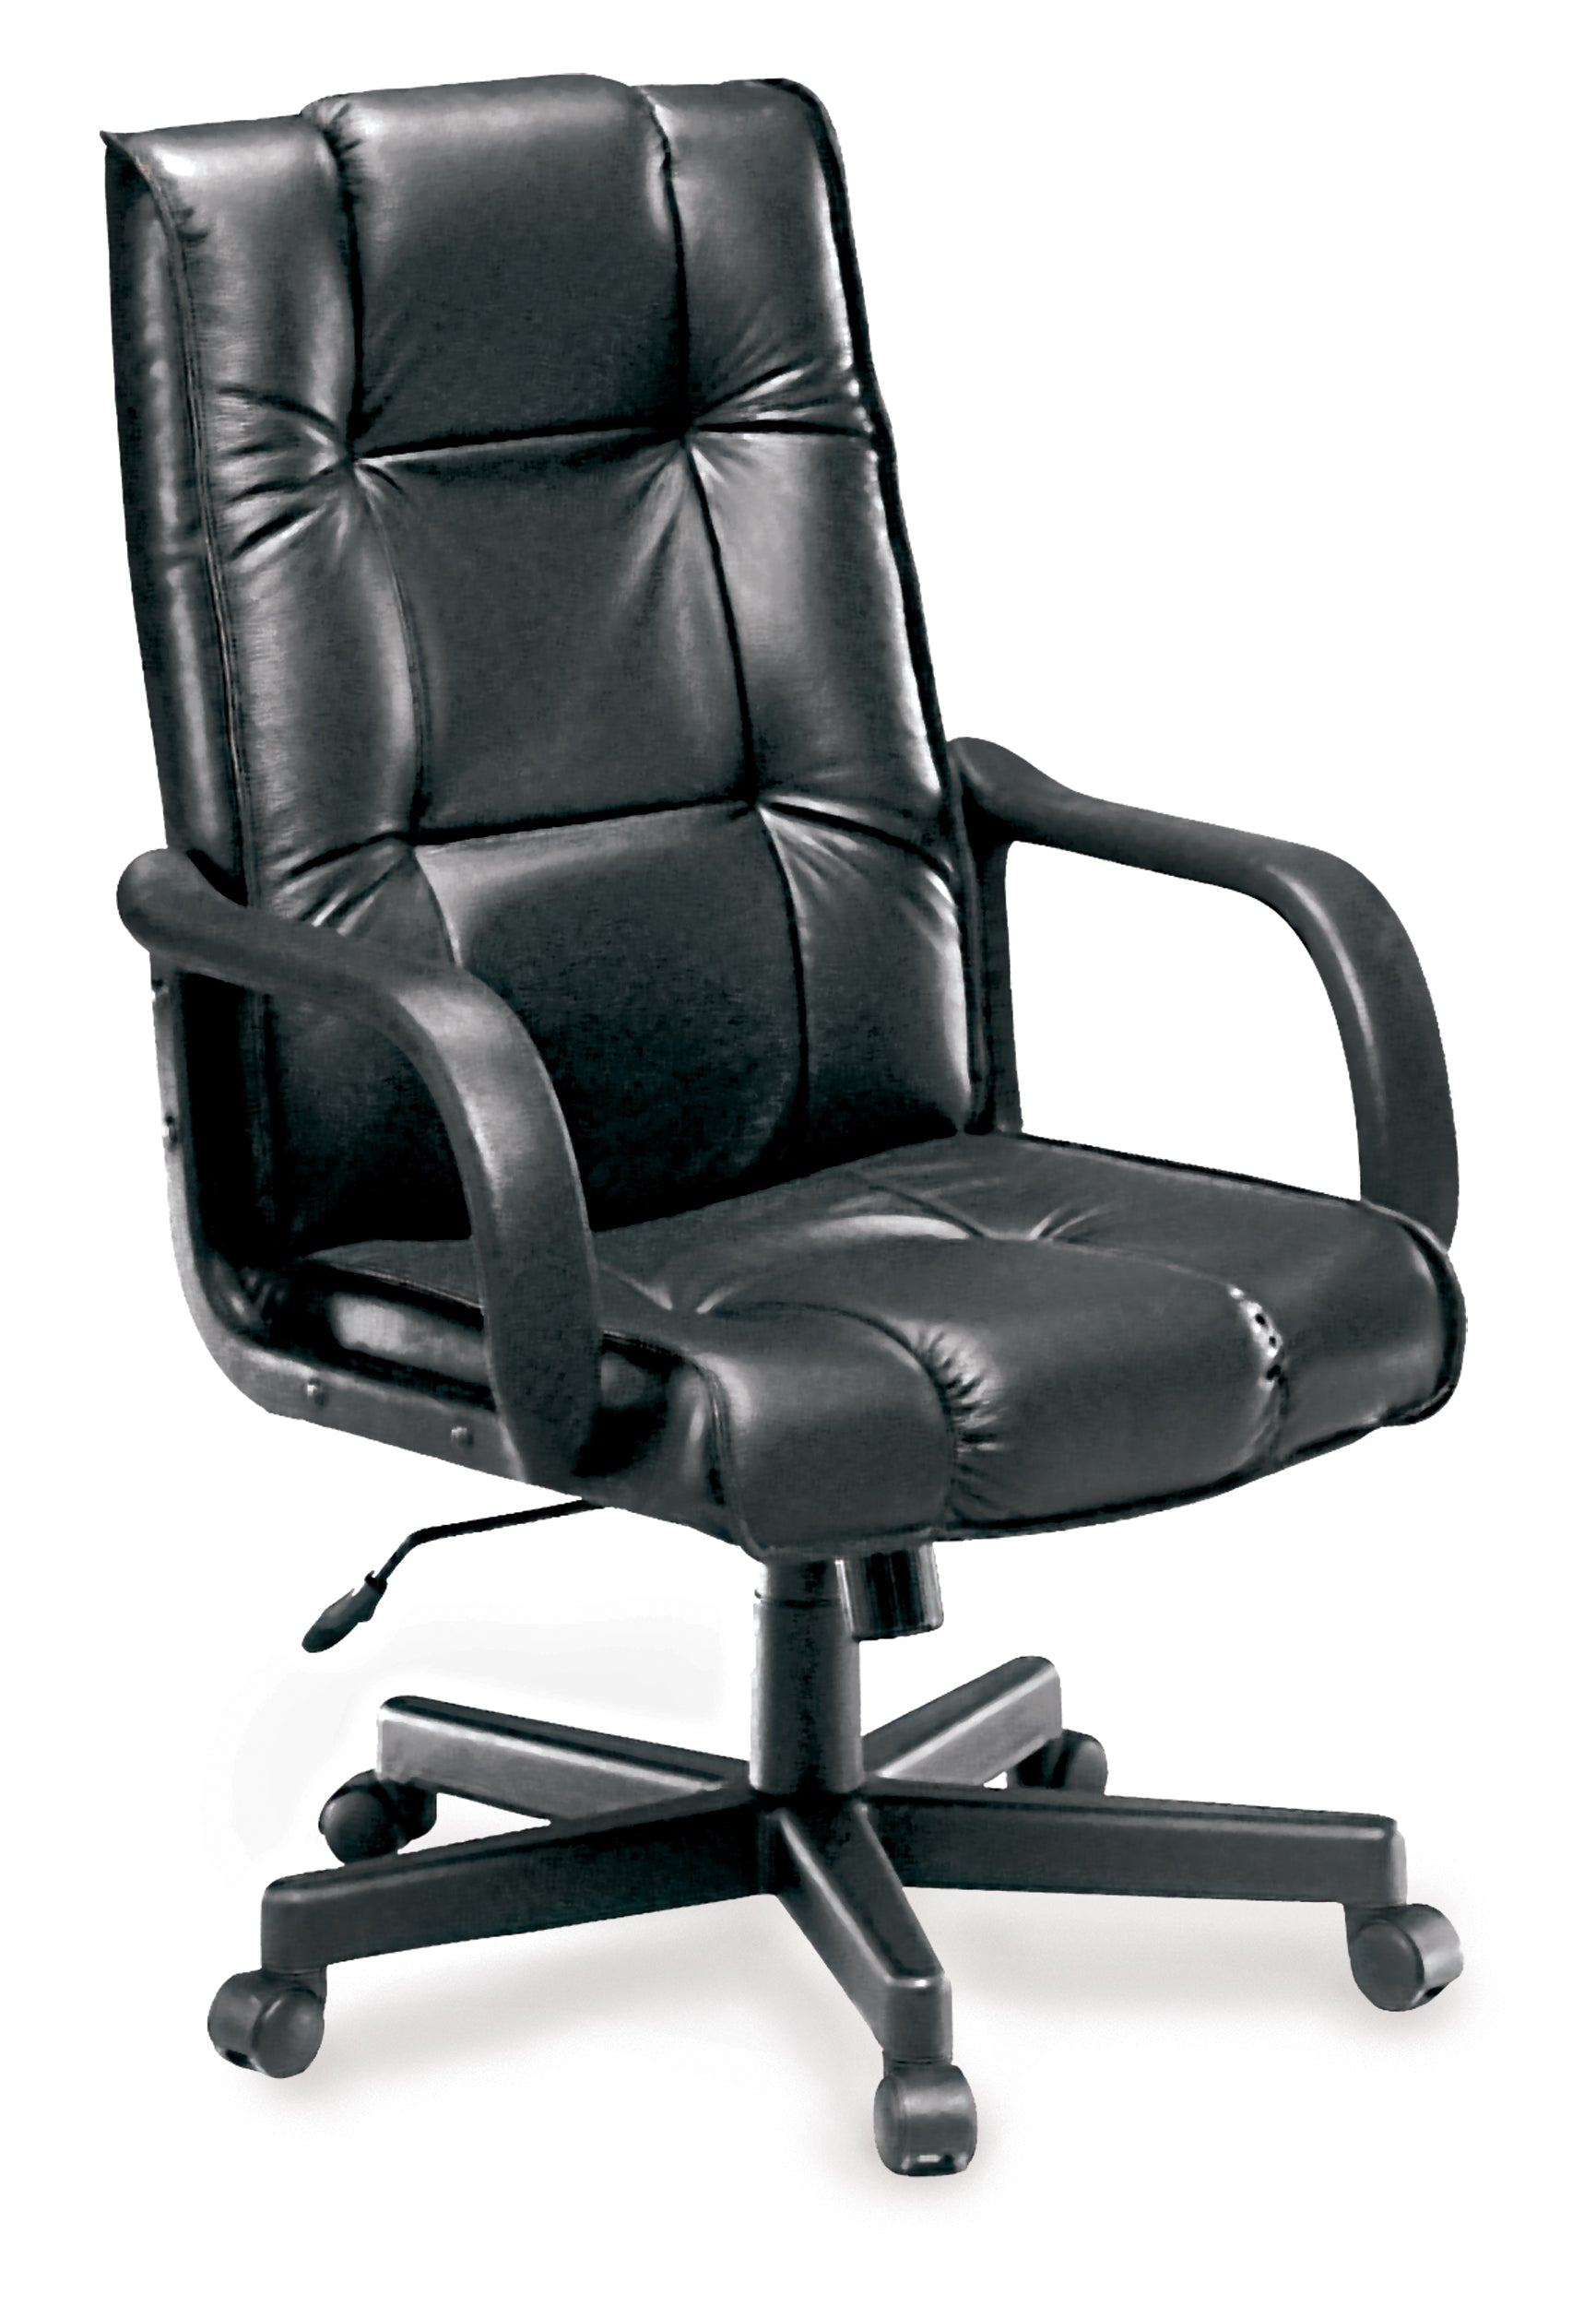 Model 520-L Leather Executive High-Back Conference / Office Chair